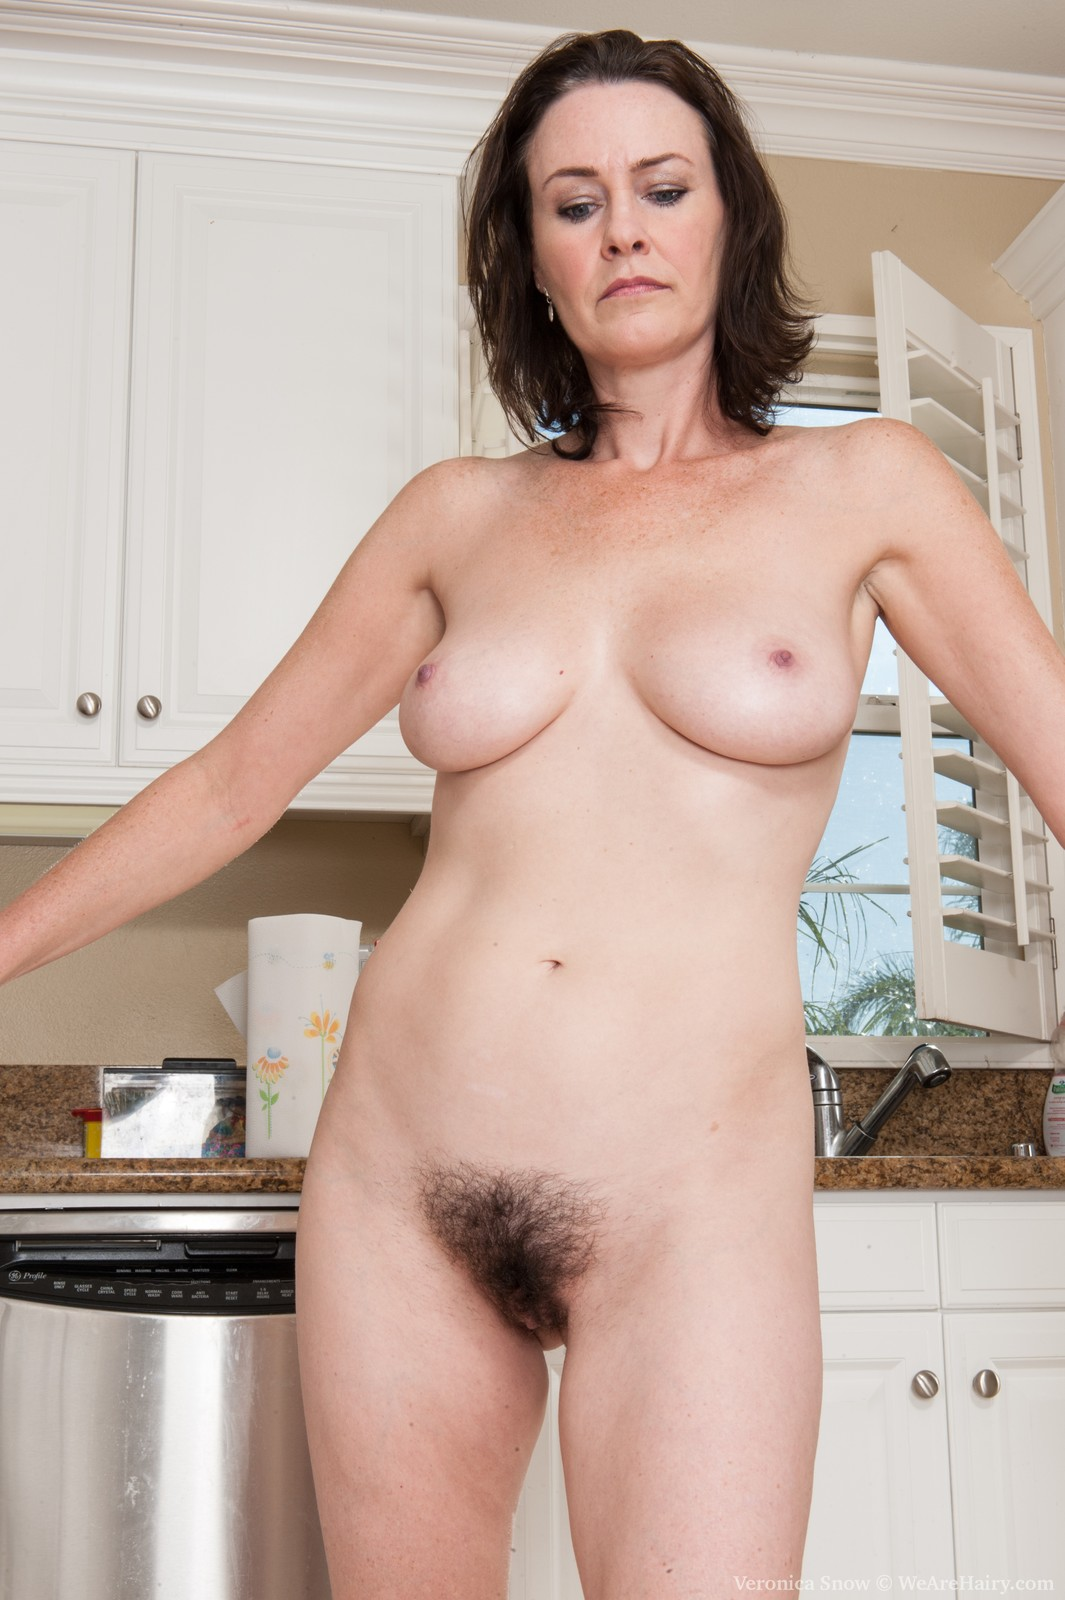 Pictures of housewife naked